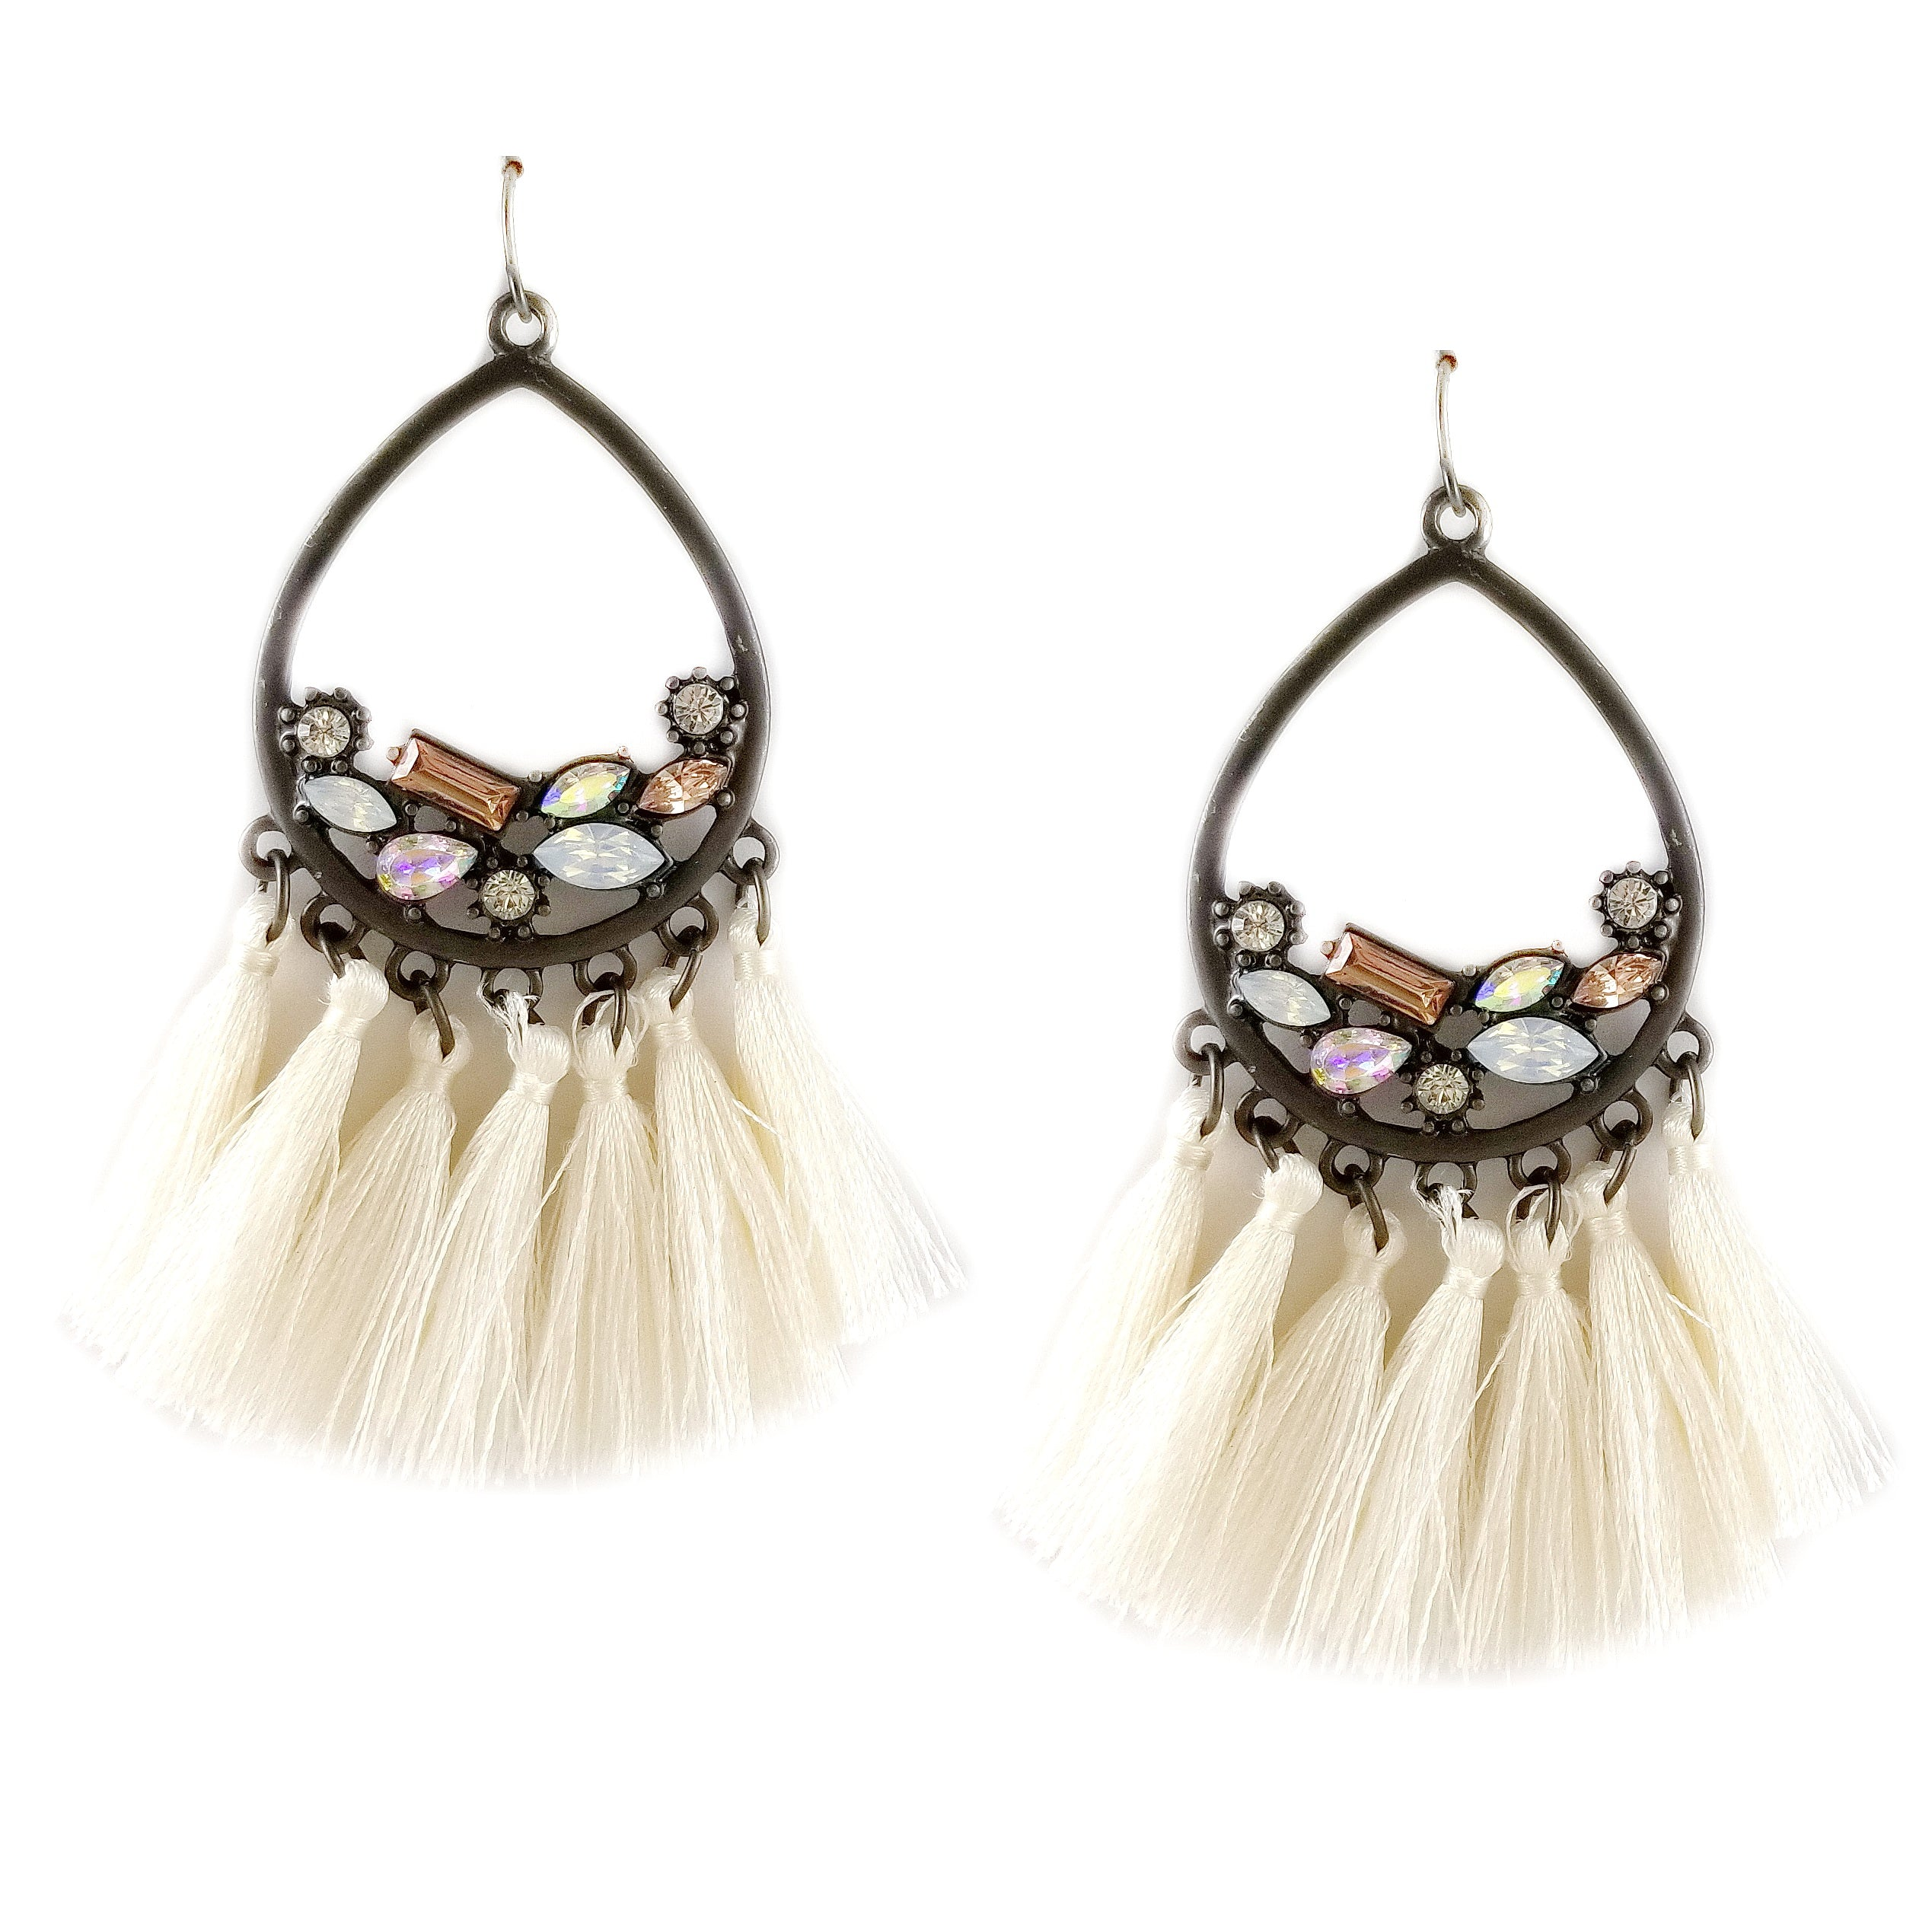 chandeliers fringe earrings stella dot aiyana home p